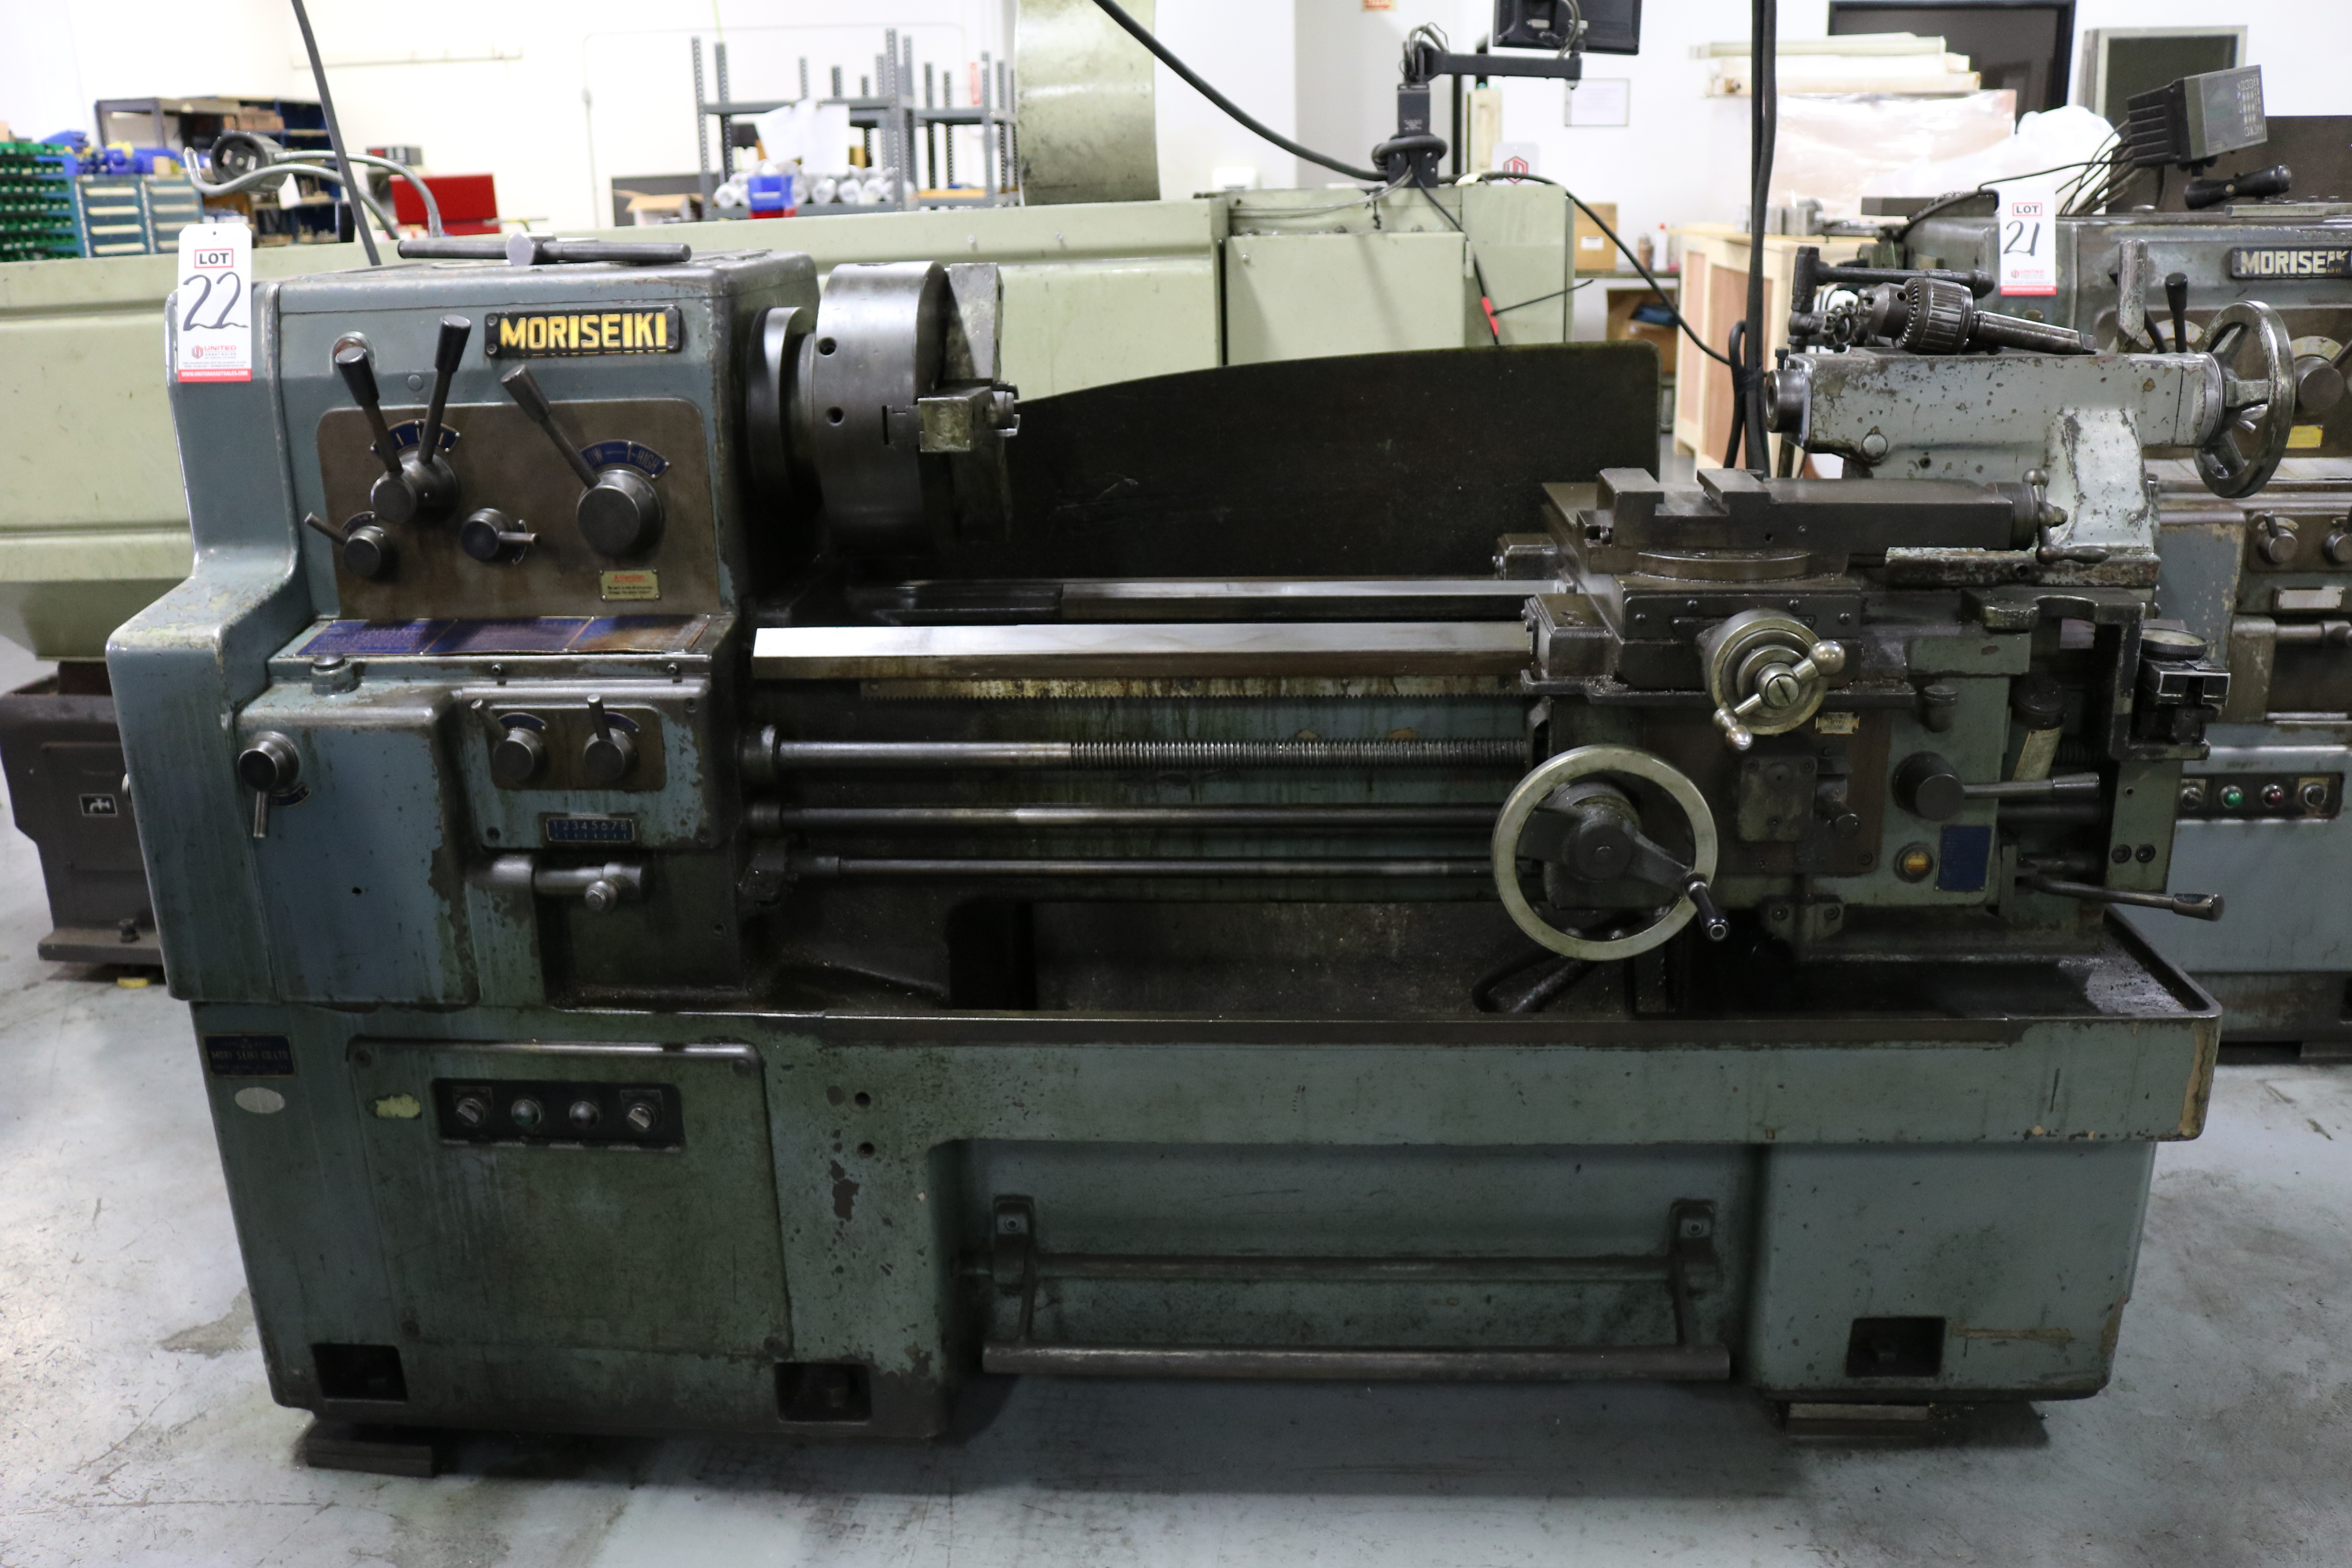 "Lot 22 - MORI SEIKI M-850 ENGINE LATHE, 17"" X 33"" CC, 12"" 3-JAW CHUCK, 2"" HOLE THRU, 5 HP, S/N 6524"